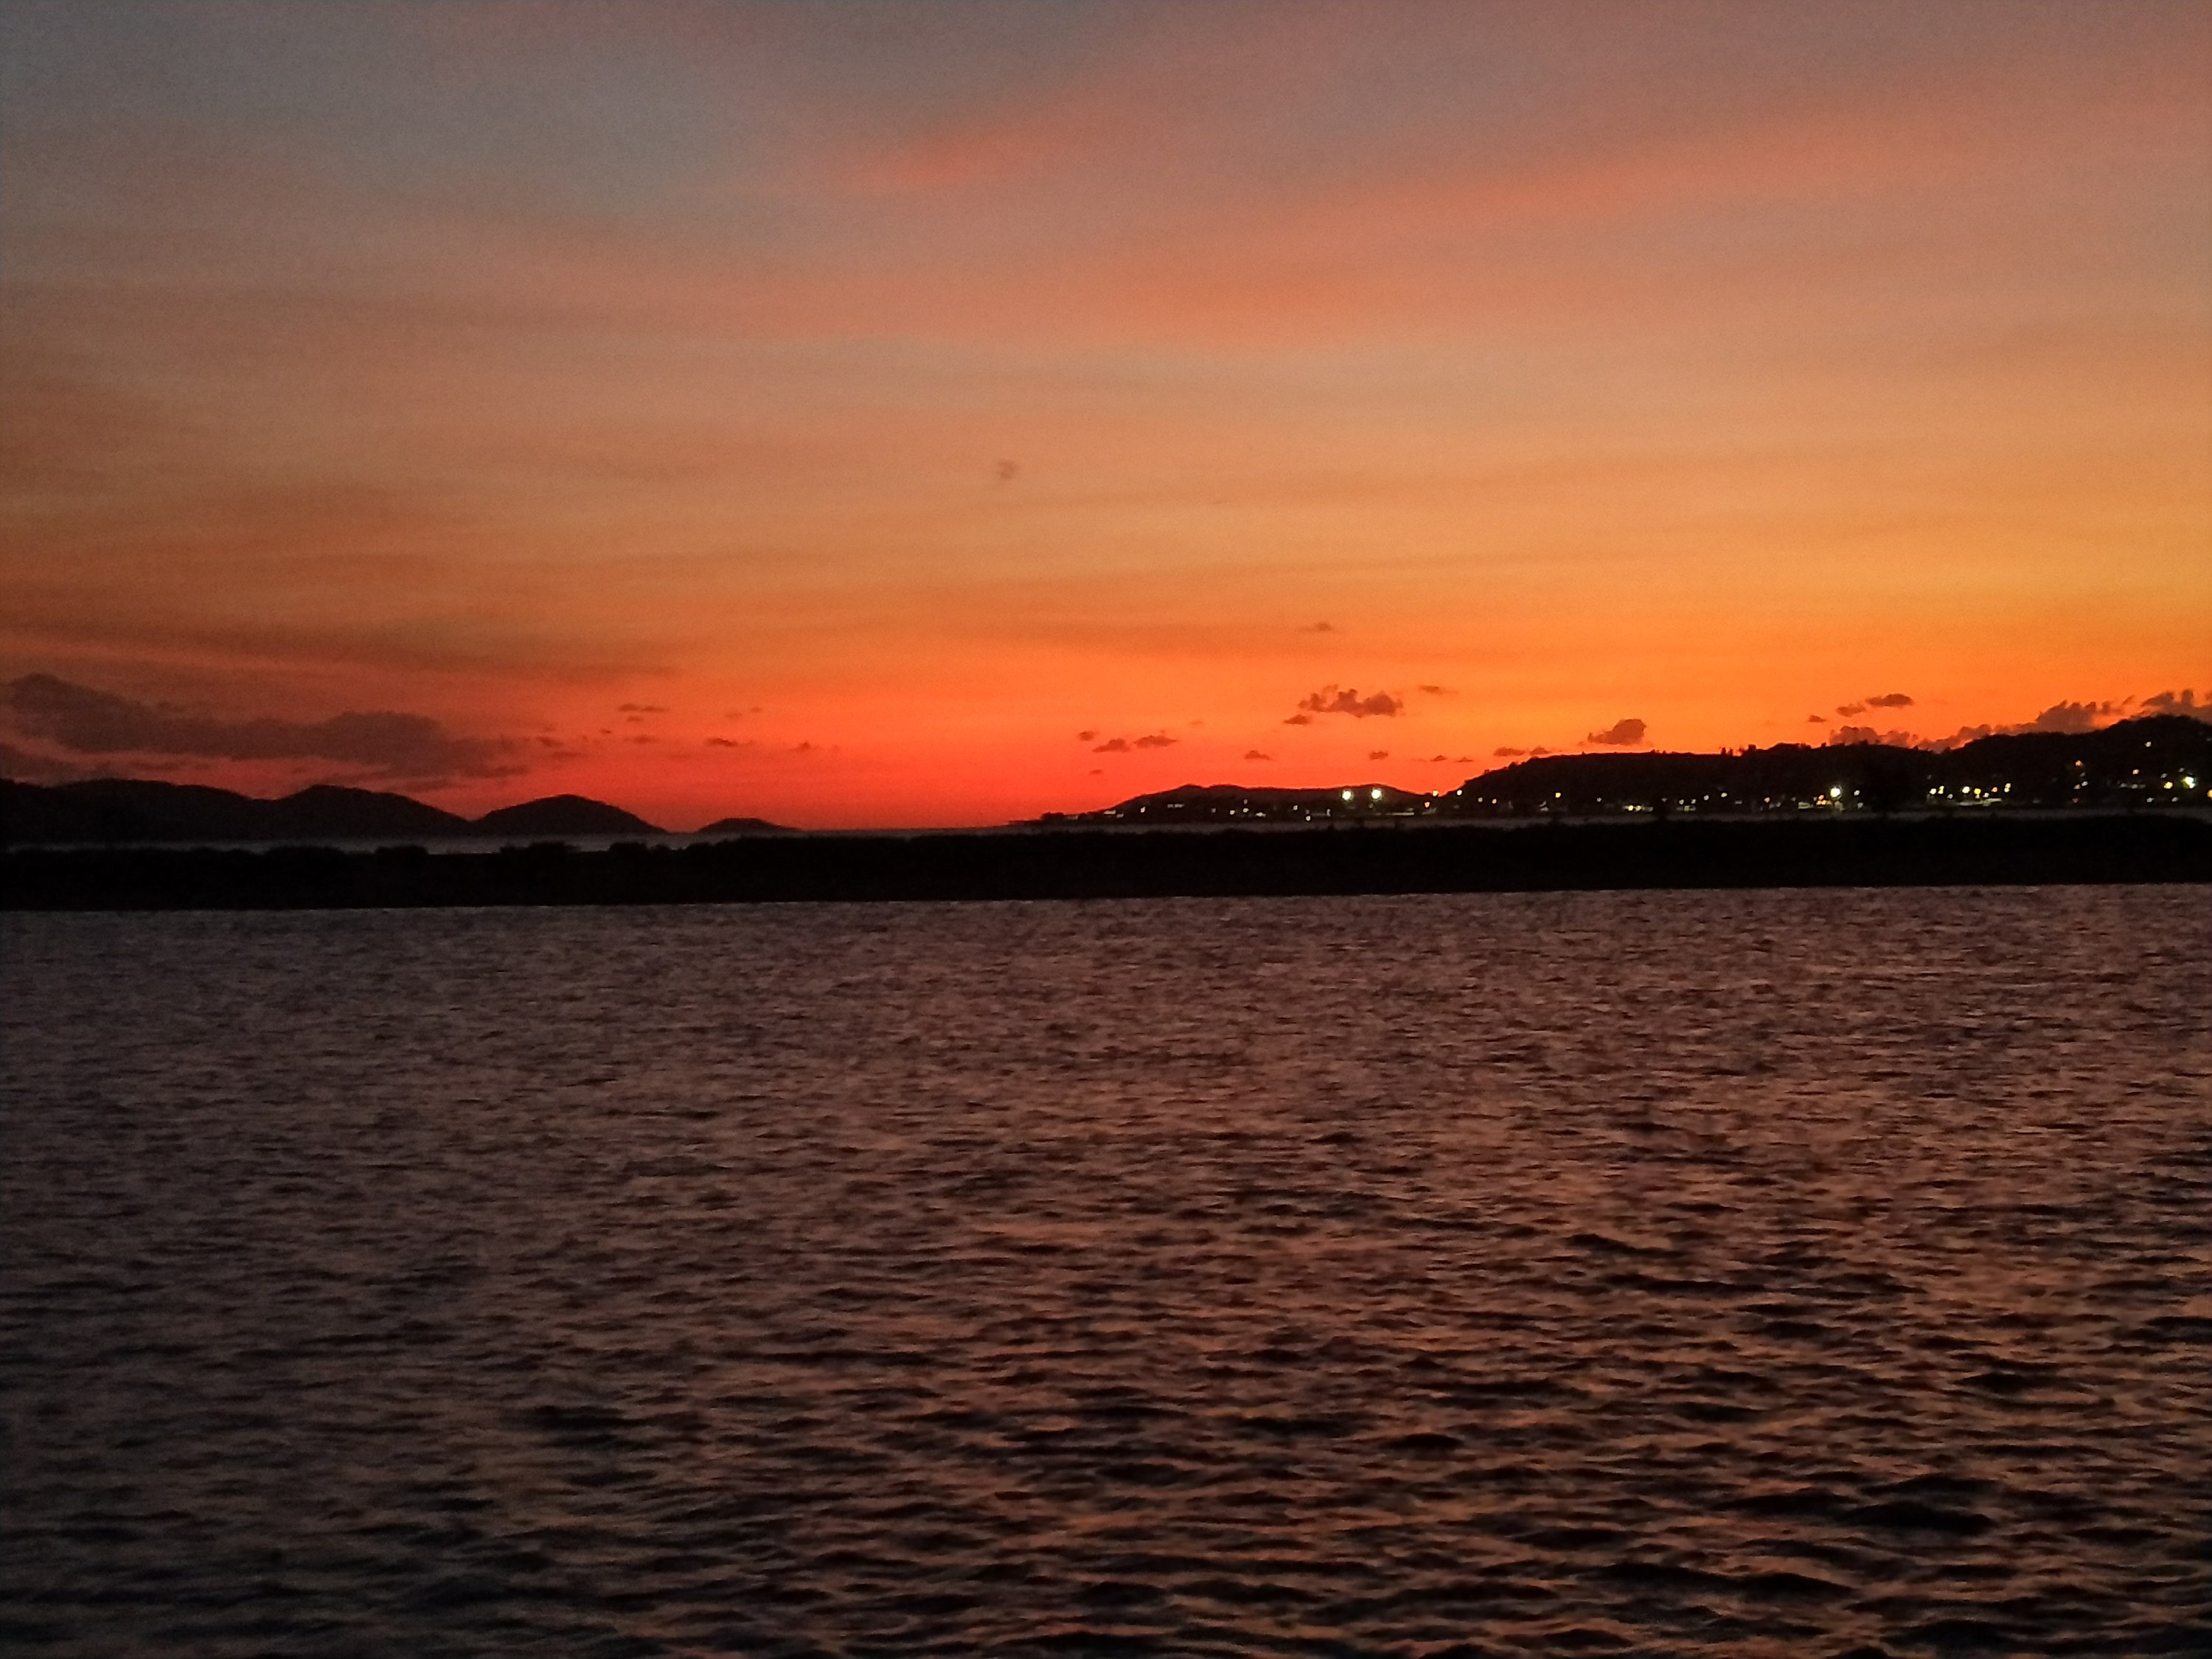 The sun setting over Thursday Island as viewed from Horn Island anchorage.